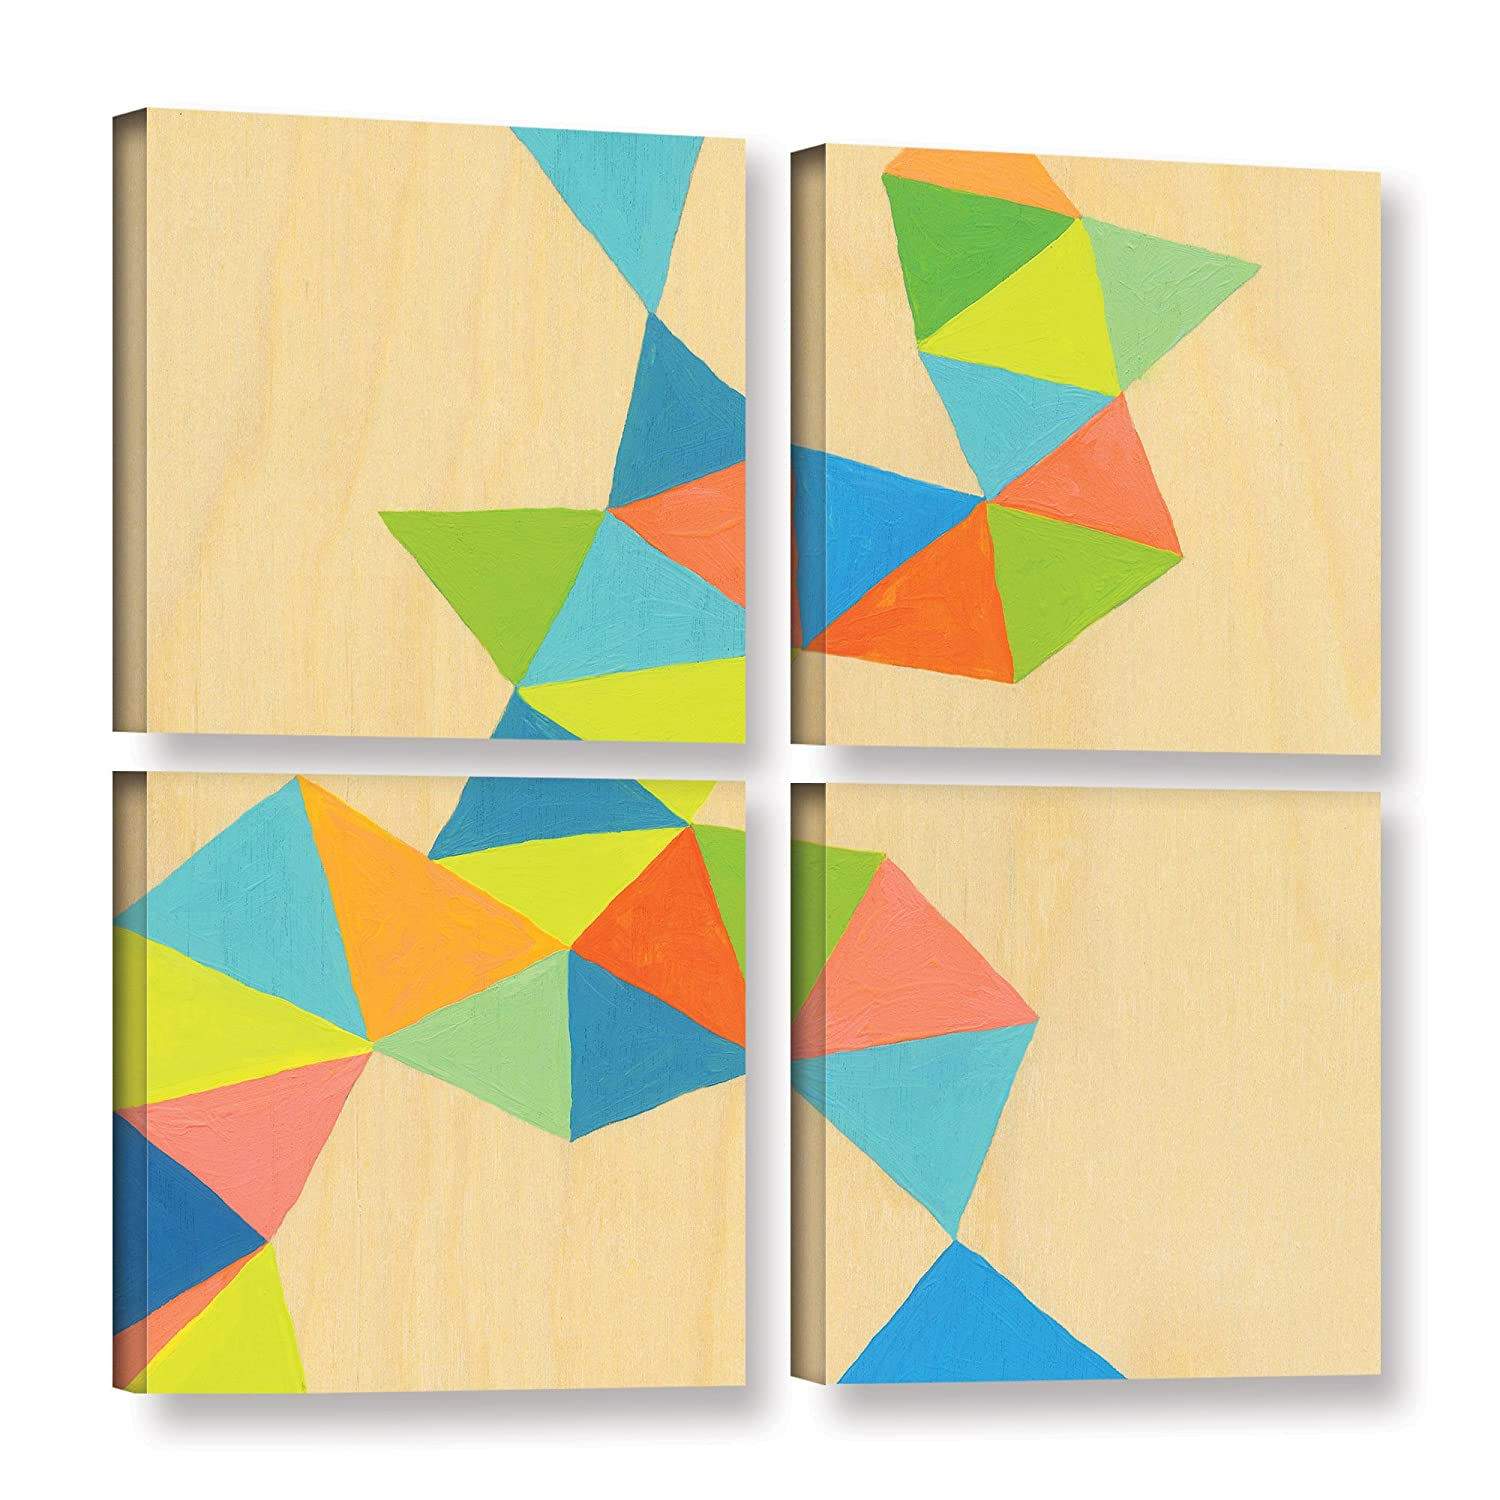 ArtWall Jan Weisss Shapes at A Cellular Level 3 4 Piece Gallery Wrapped Canvas Square Set 48X48,